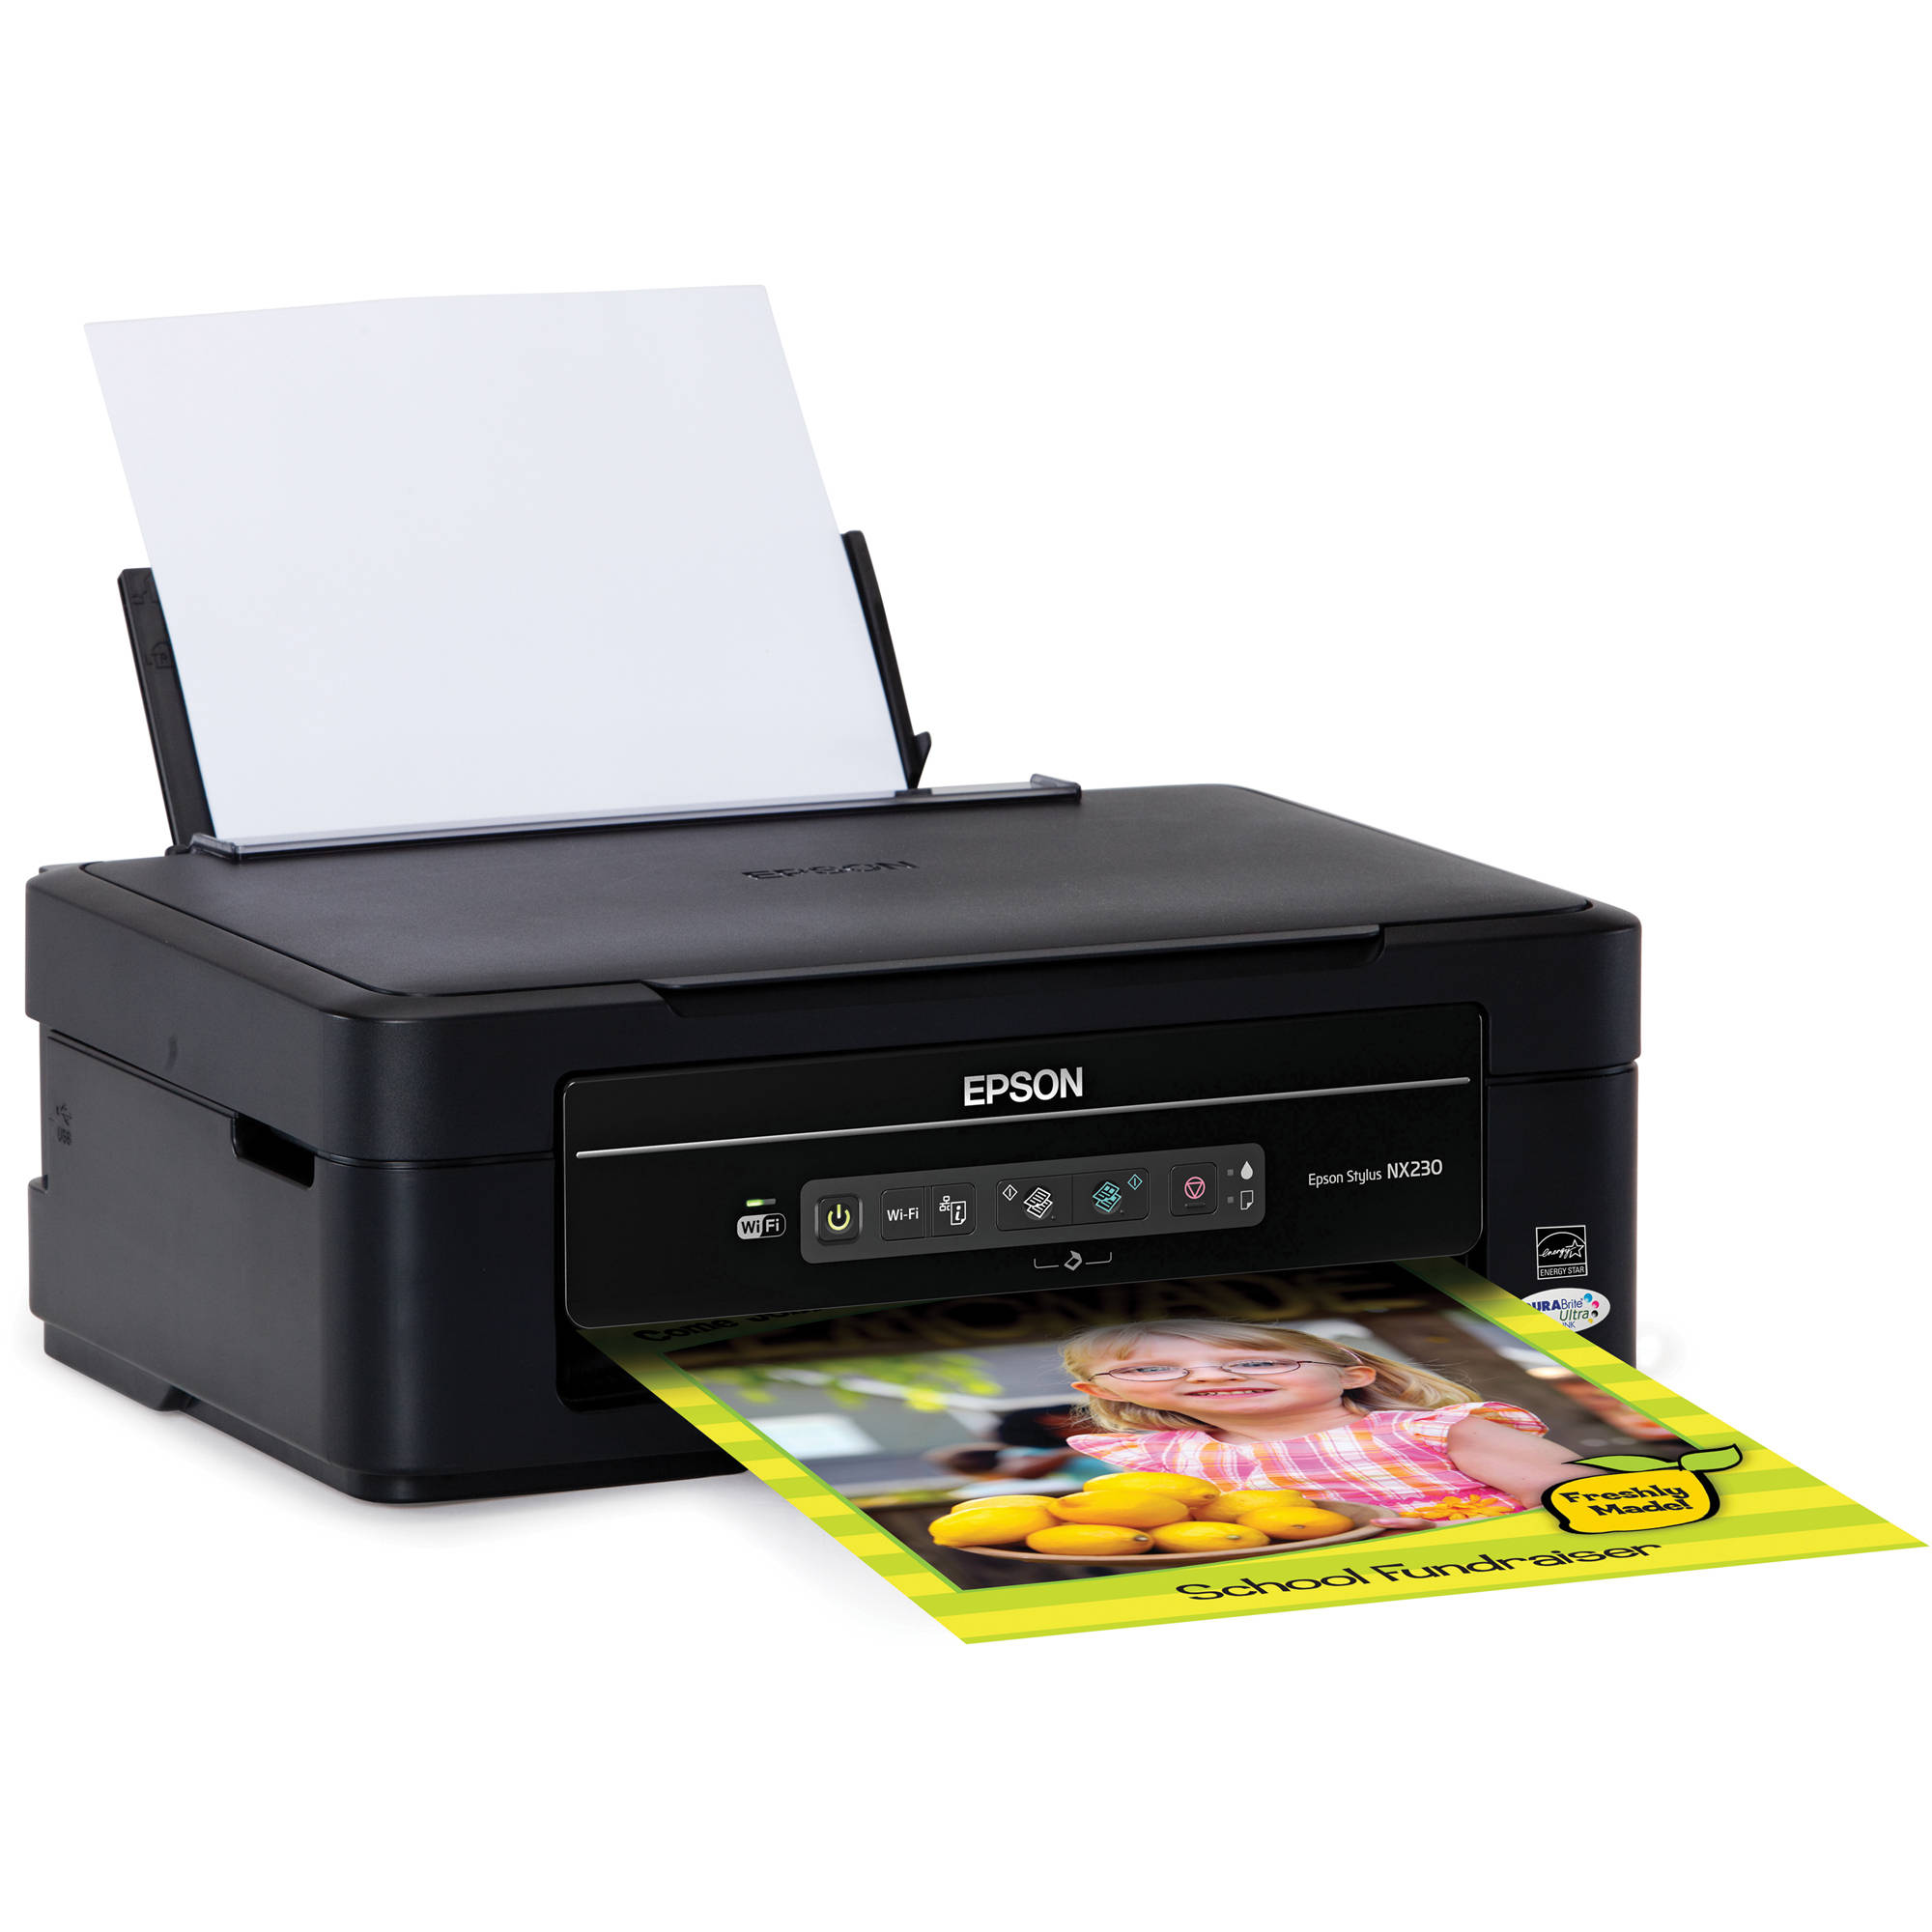 epson stylus nx230 small in one printer c11cb23201 b h photo rh bhphotovideo com epson stylus nx230 owners manual Epson Stylus NX420